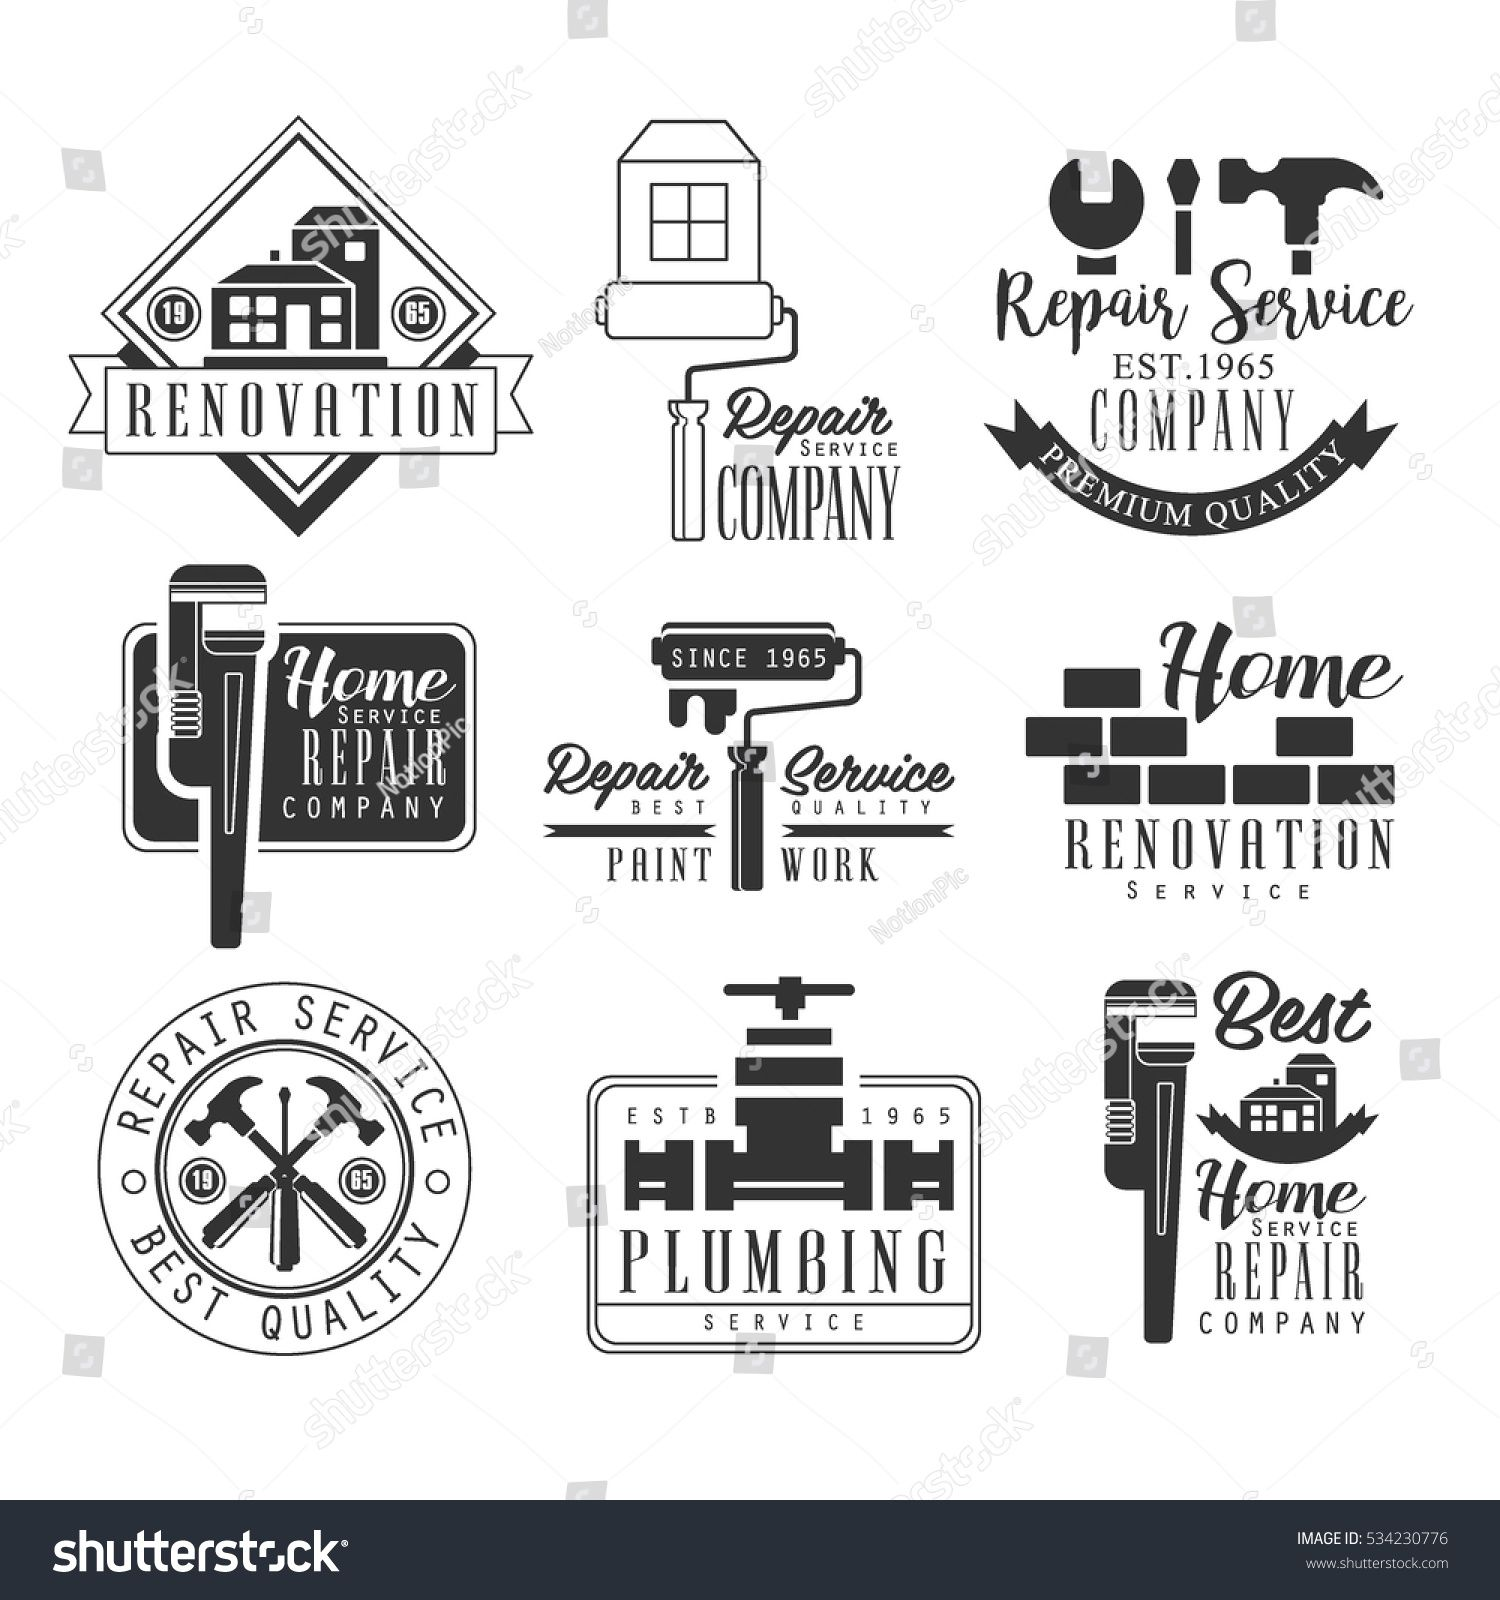 plumbing and repairing service black and white sign design templates with text and tools silhouettes